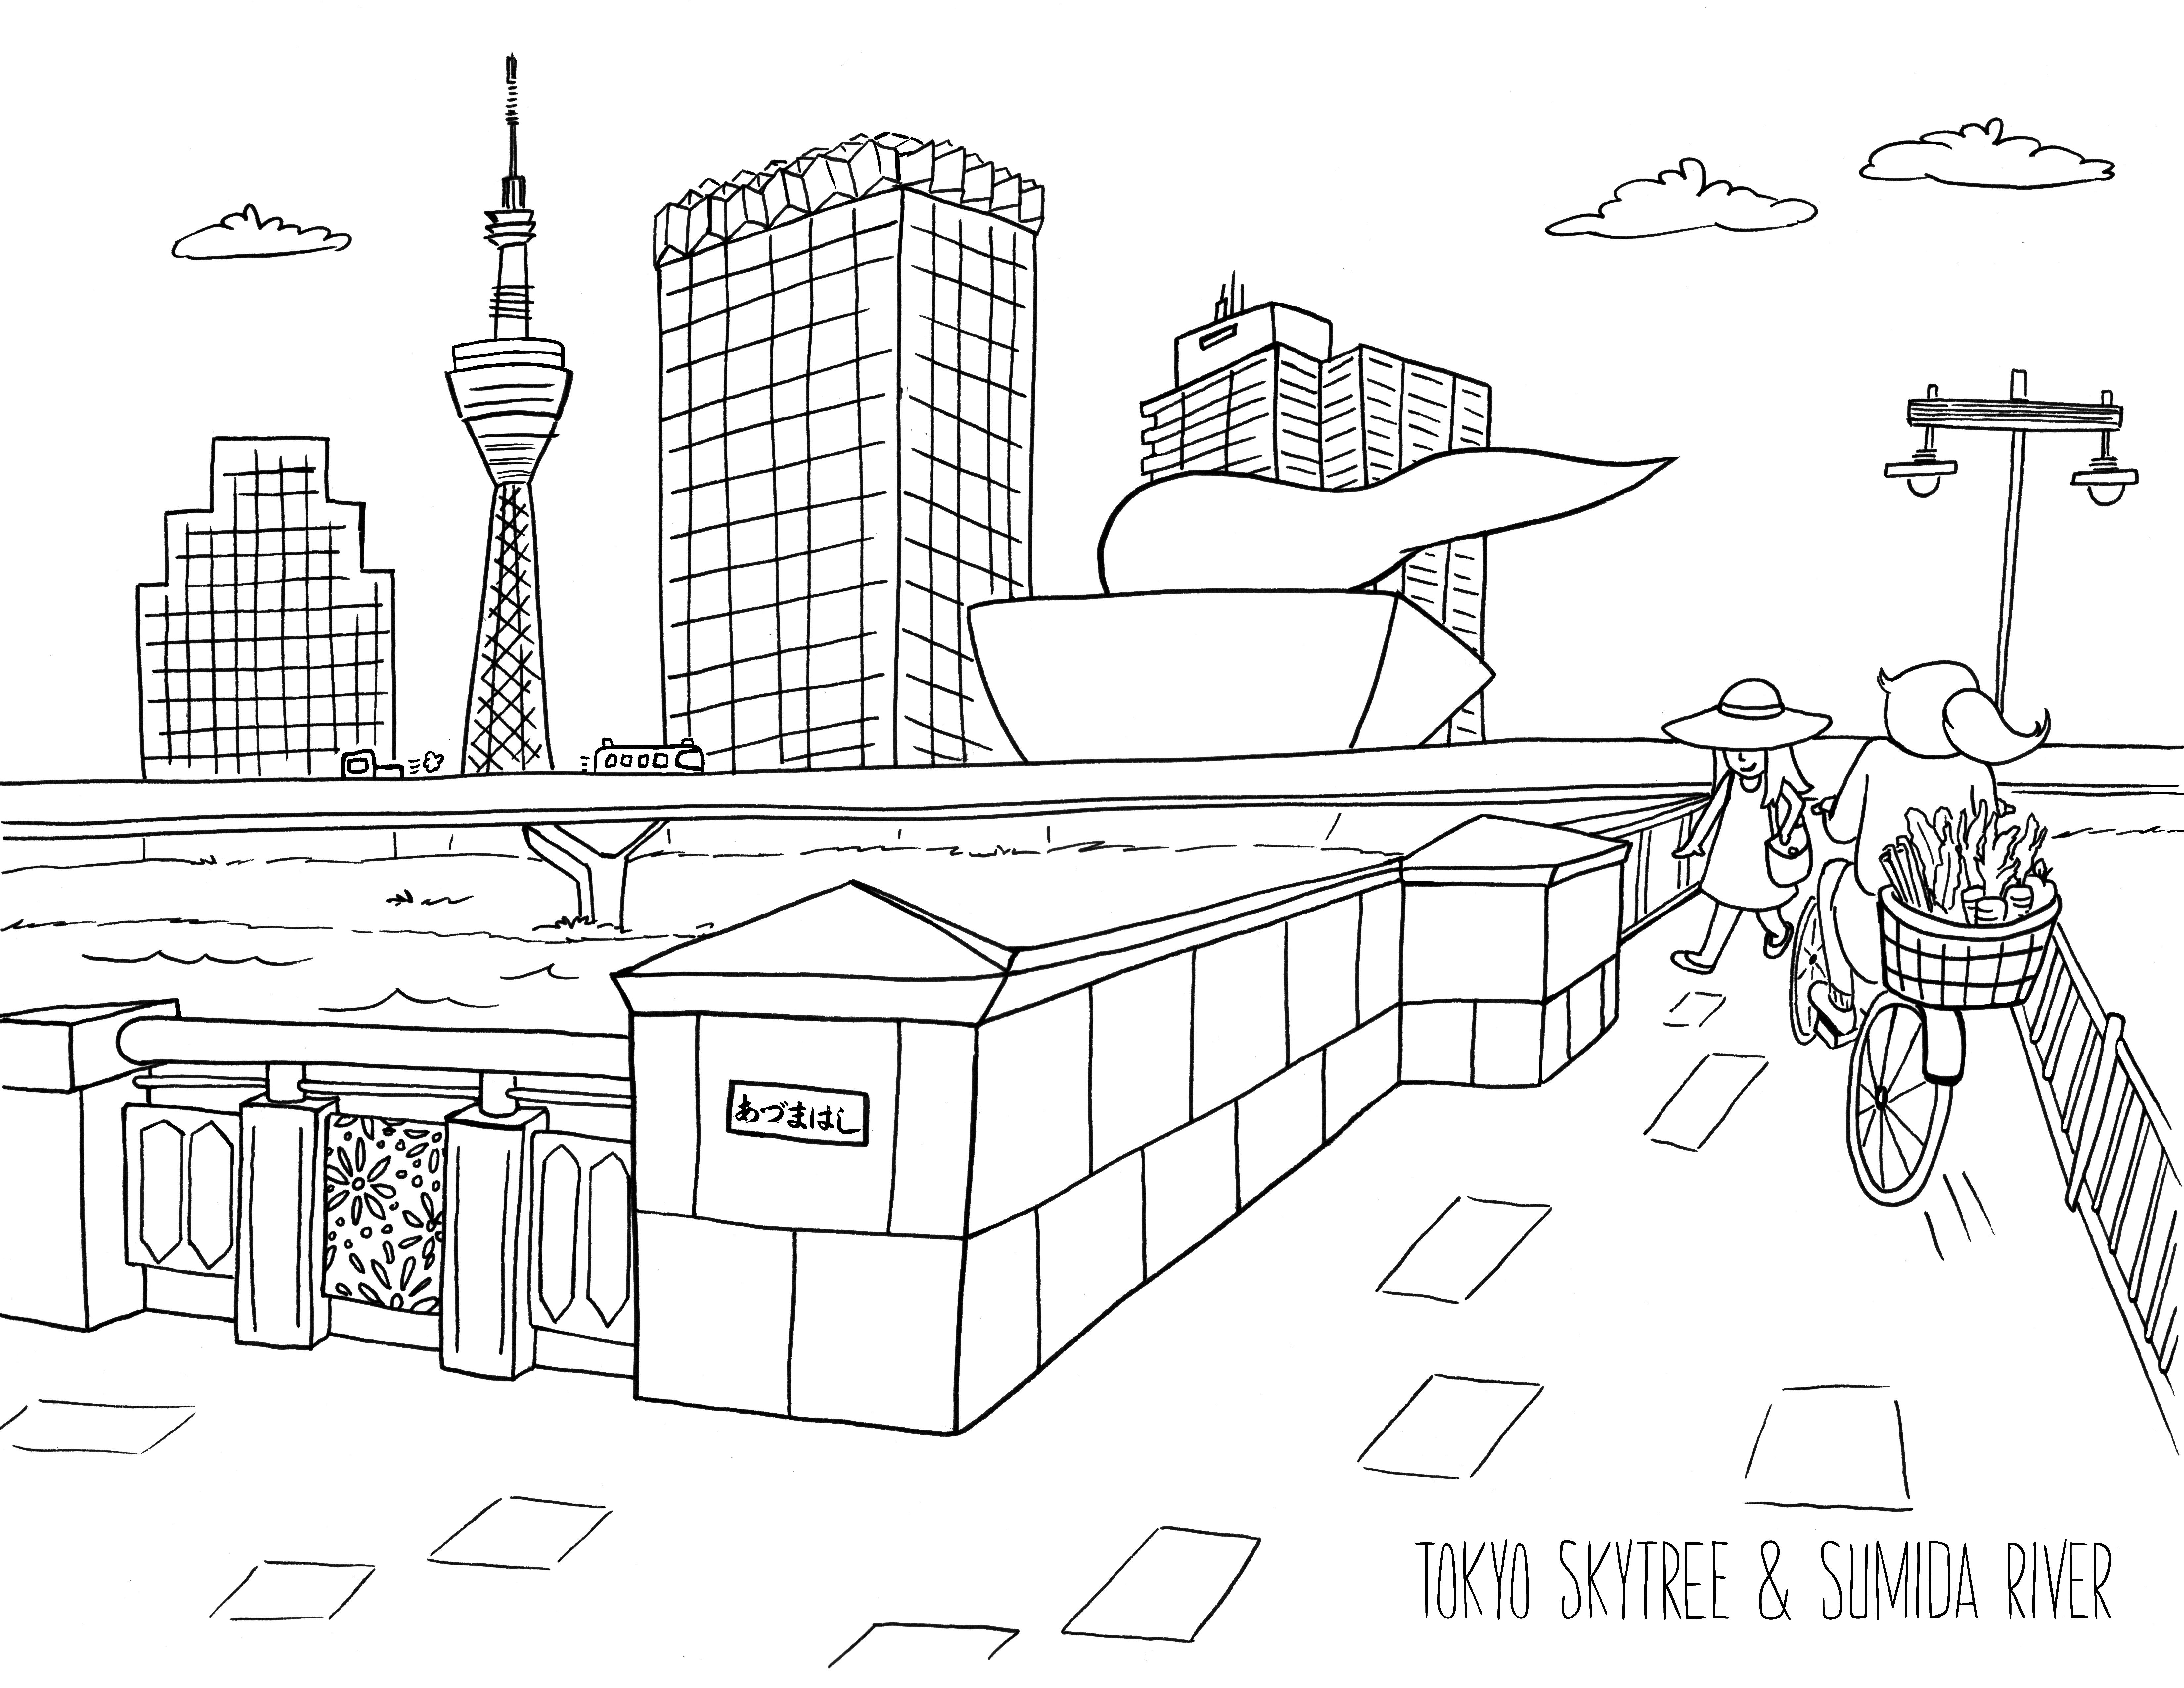 Tokyo Skytree and Sumida River Illustration in 2019